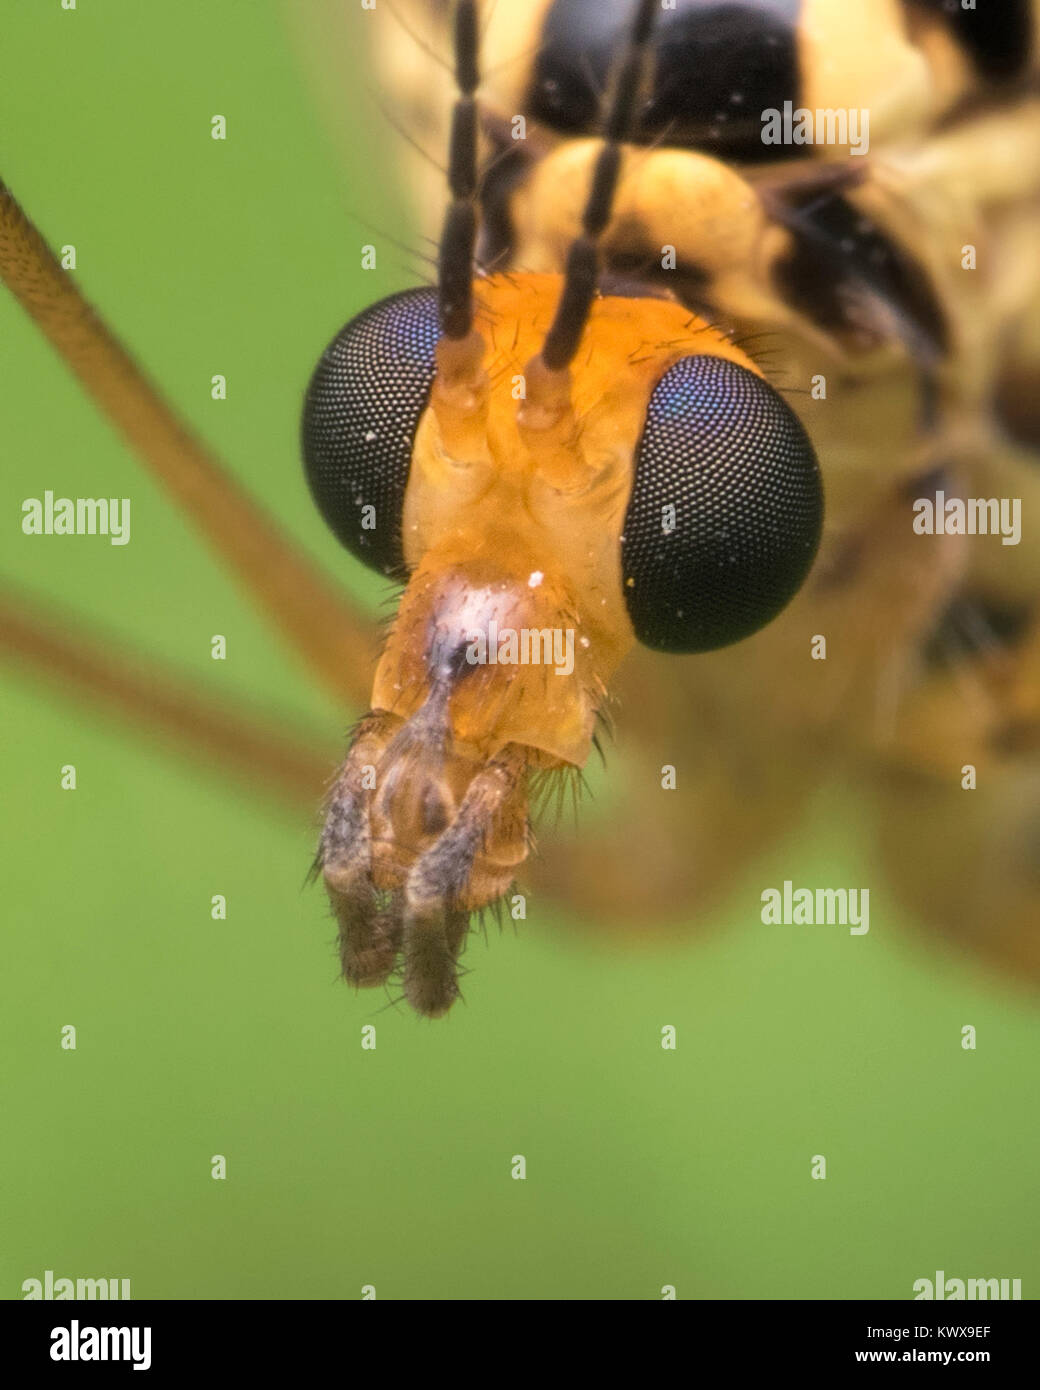 Tiger Cranefly (Nephrotoma sp.) close up photo of the head showing the compound eyes. Cahir, Tipperary, Ireland. - Stock Image